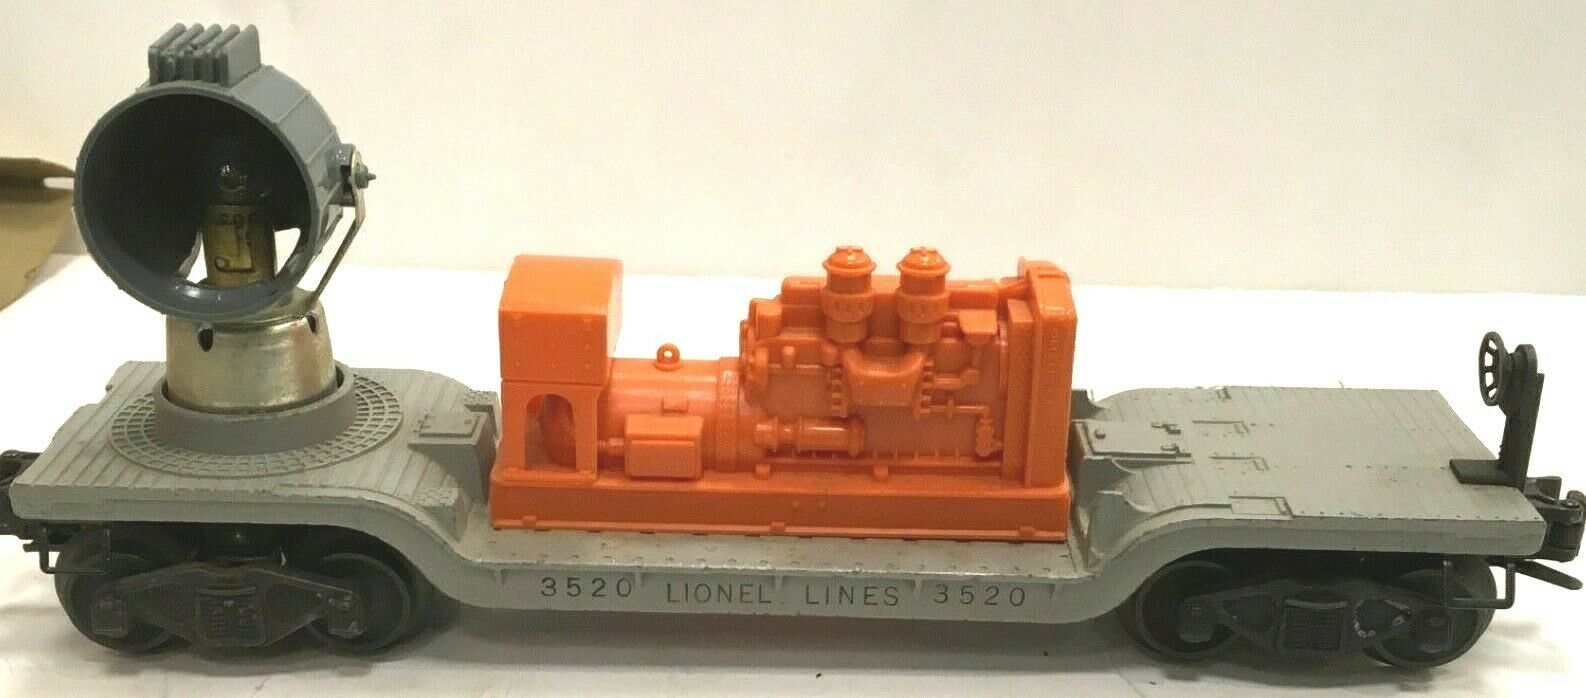 VINTAGE LIONEL TRAIN redATING SEARCHLIGHT CAR IN THE BOX FREE SHIPPING